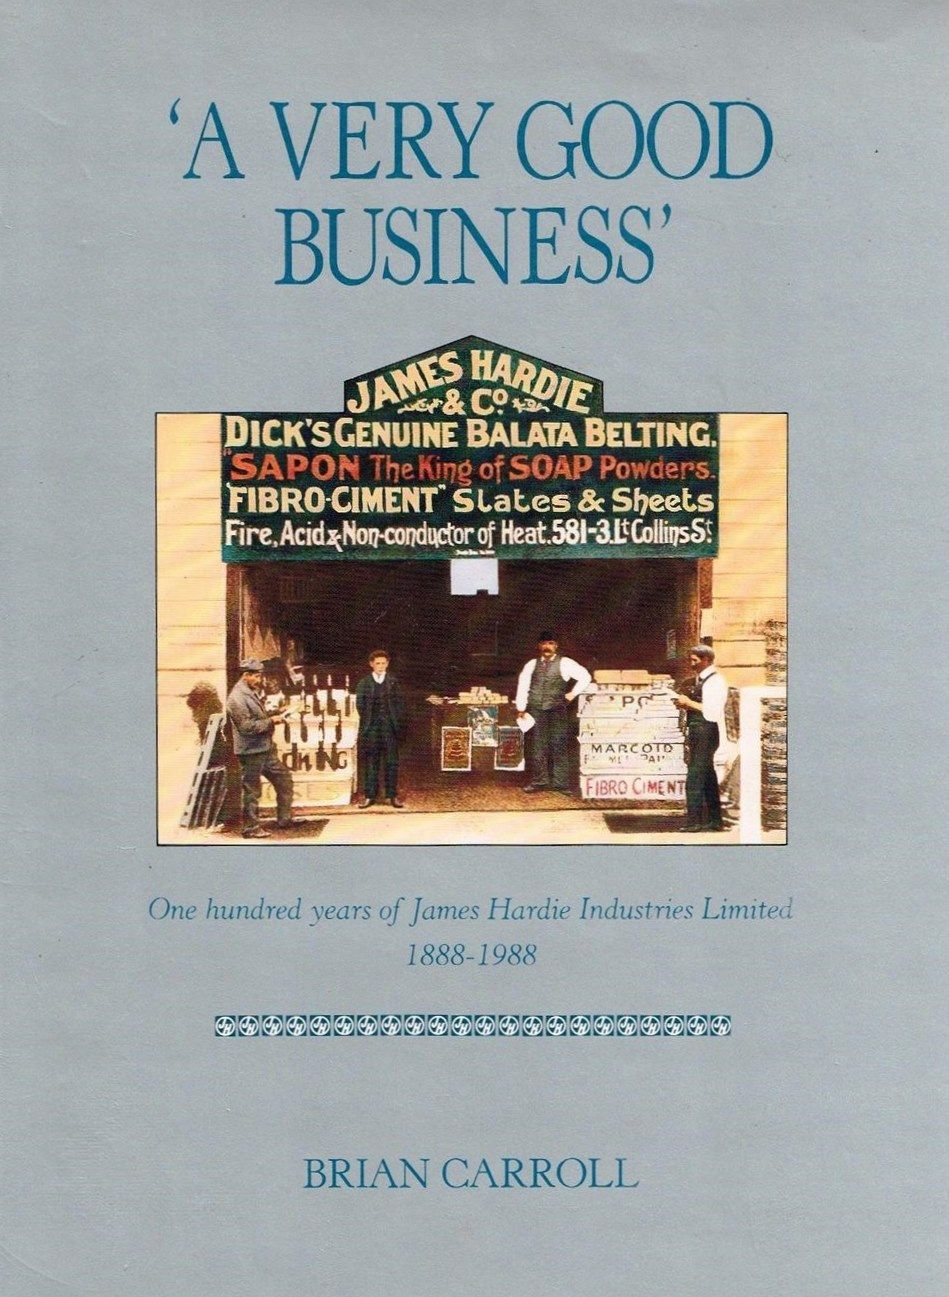 A Very Good Business : 100 Years of James Hardie Industries